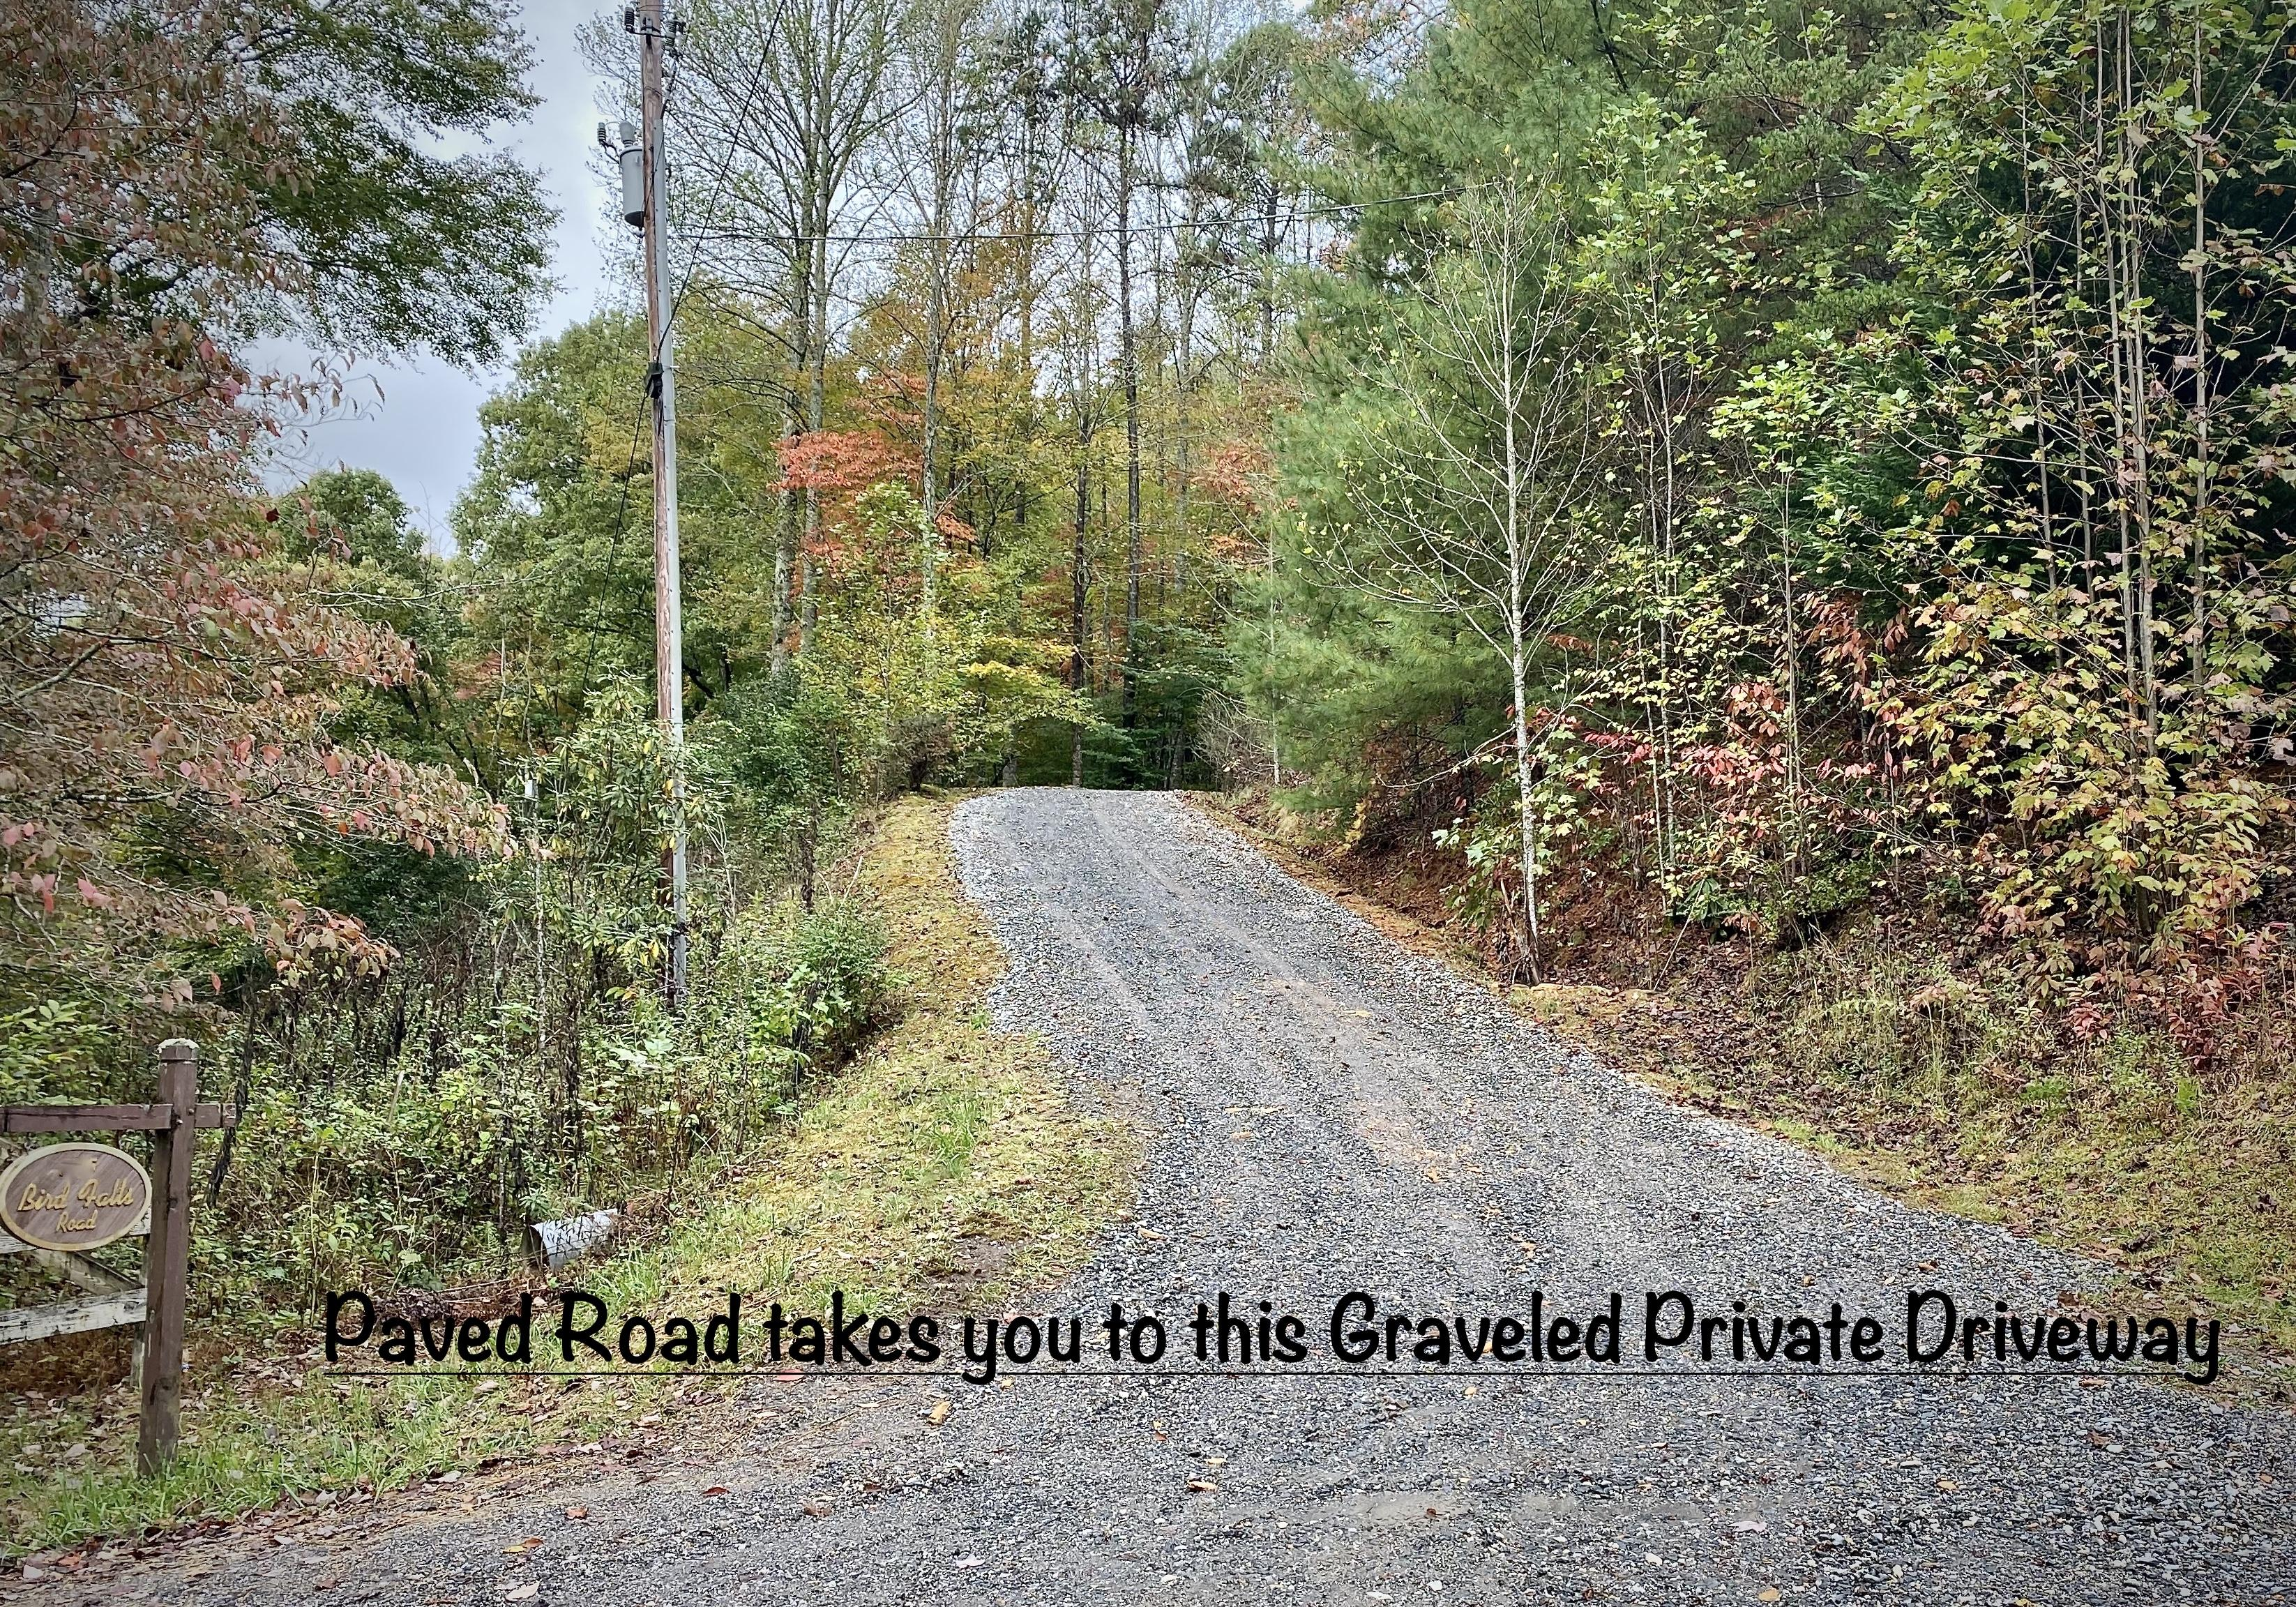 Paddlers Retreat's Private Driveway. The driveway curves to the right and the Cabin sits at the end, up on the Hill